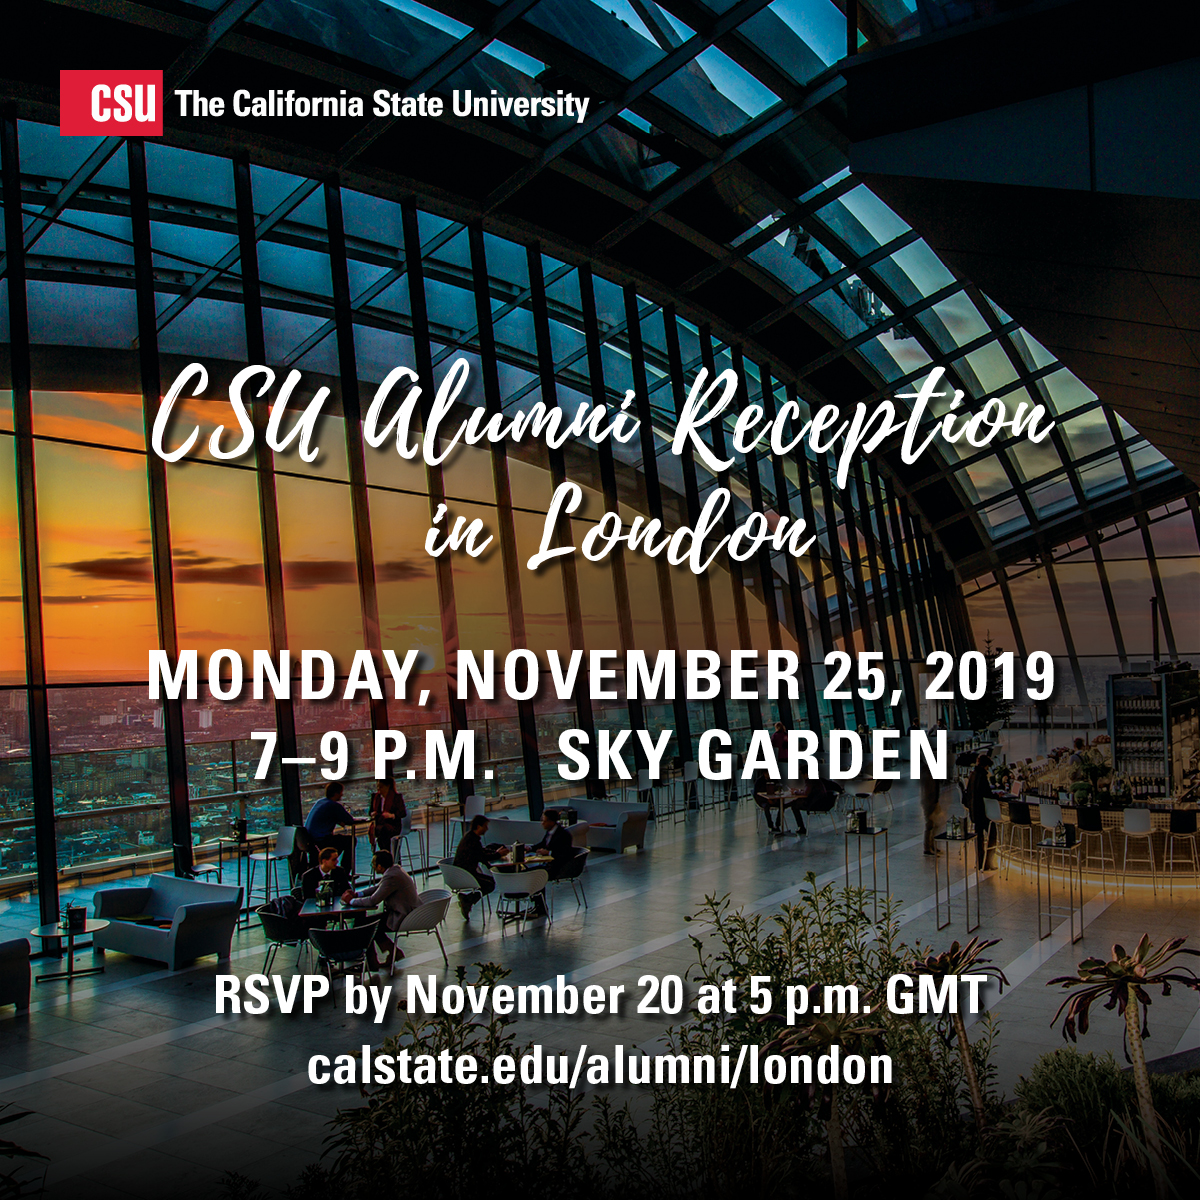 CSU Alumni Reception in London